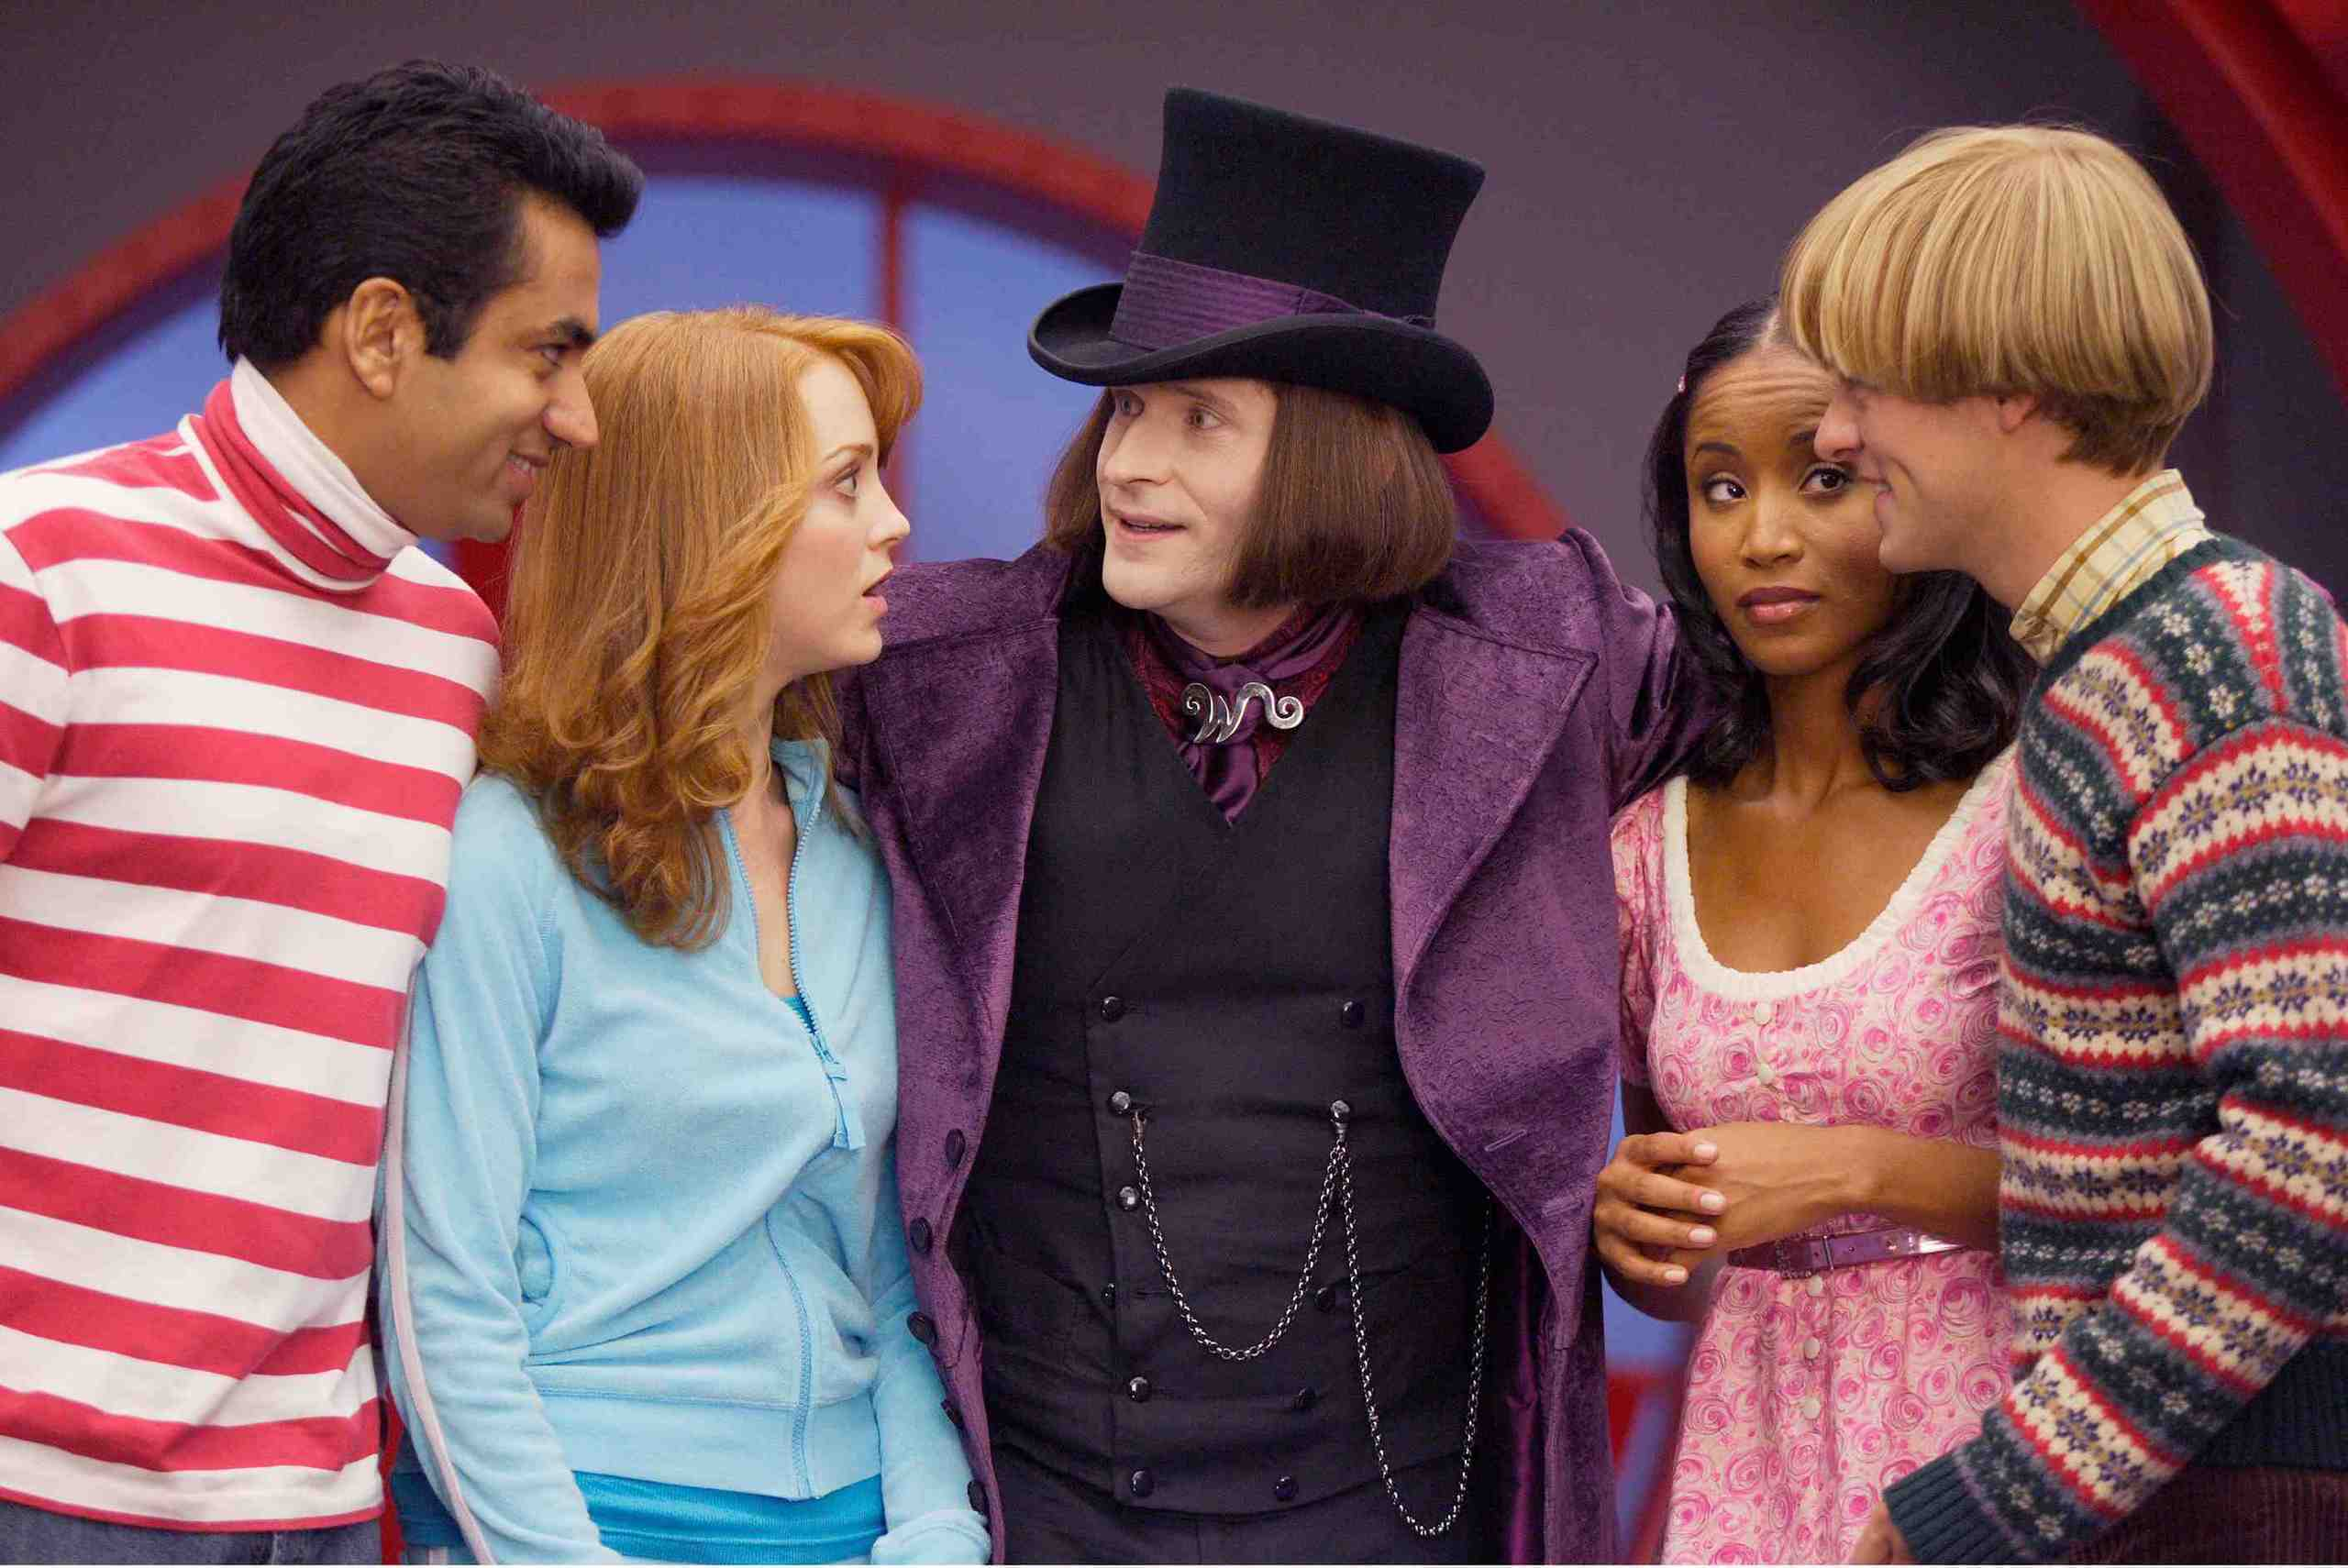 Willy (Crispin Glover) greets the orphans Kal Penn, Jayma Mays, Faune A. Chambers, Adam Campbell in Epic Movie (2007)